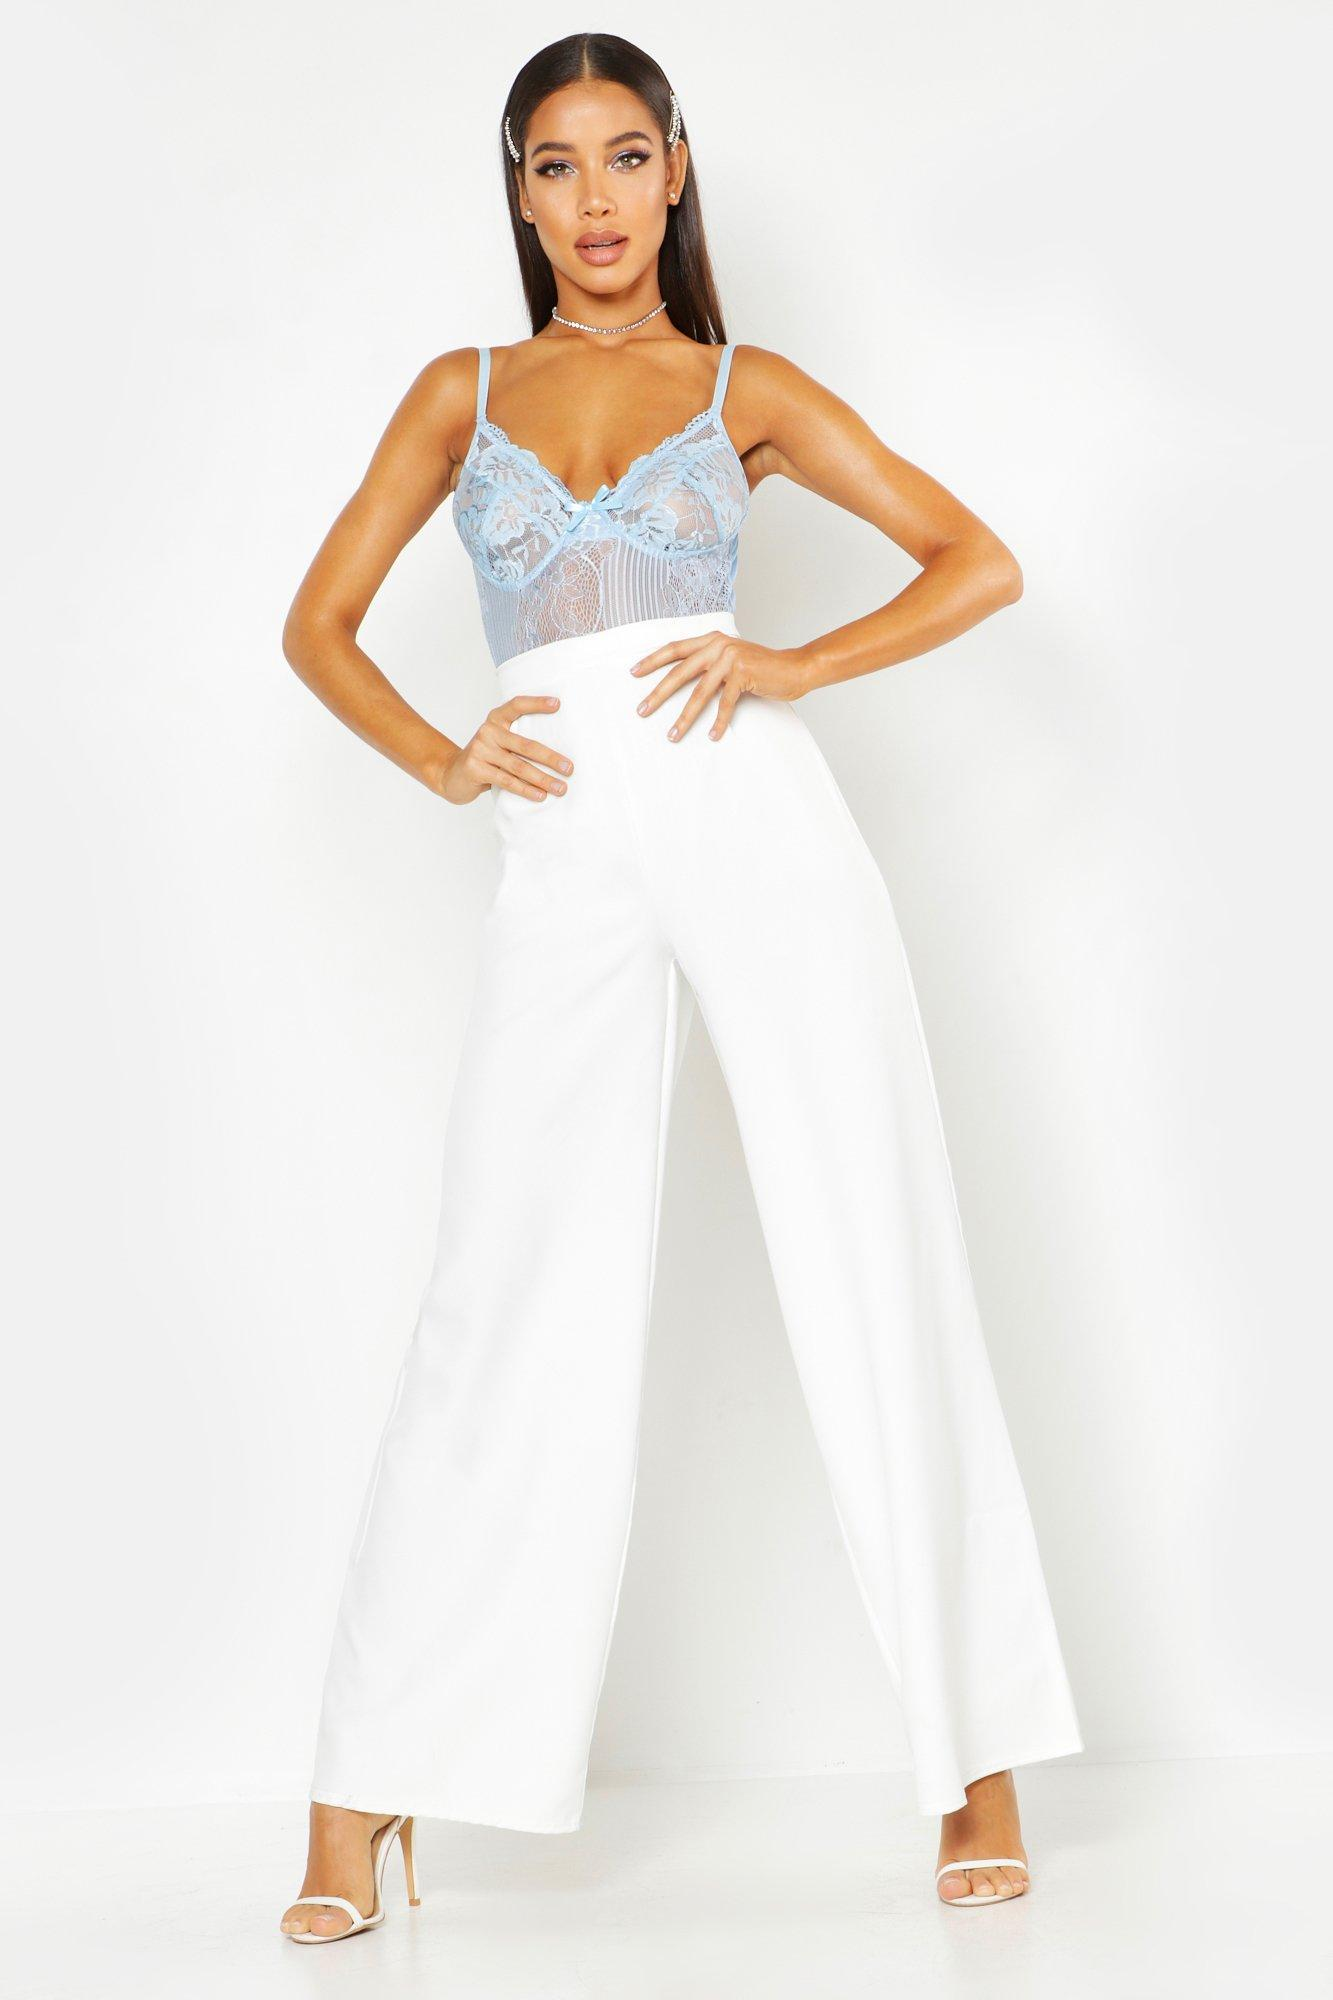 1920s Style Women's Pants, Trousers, Knickers, Tuxedo Womens High Waisted Woven Wide Leg pants - white - 16 $20.00 AT vintagedancer.com